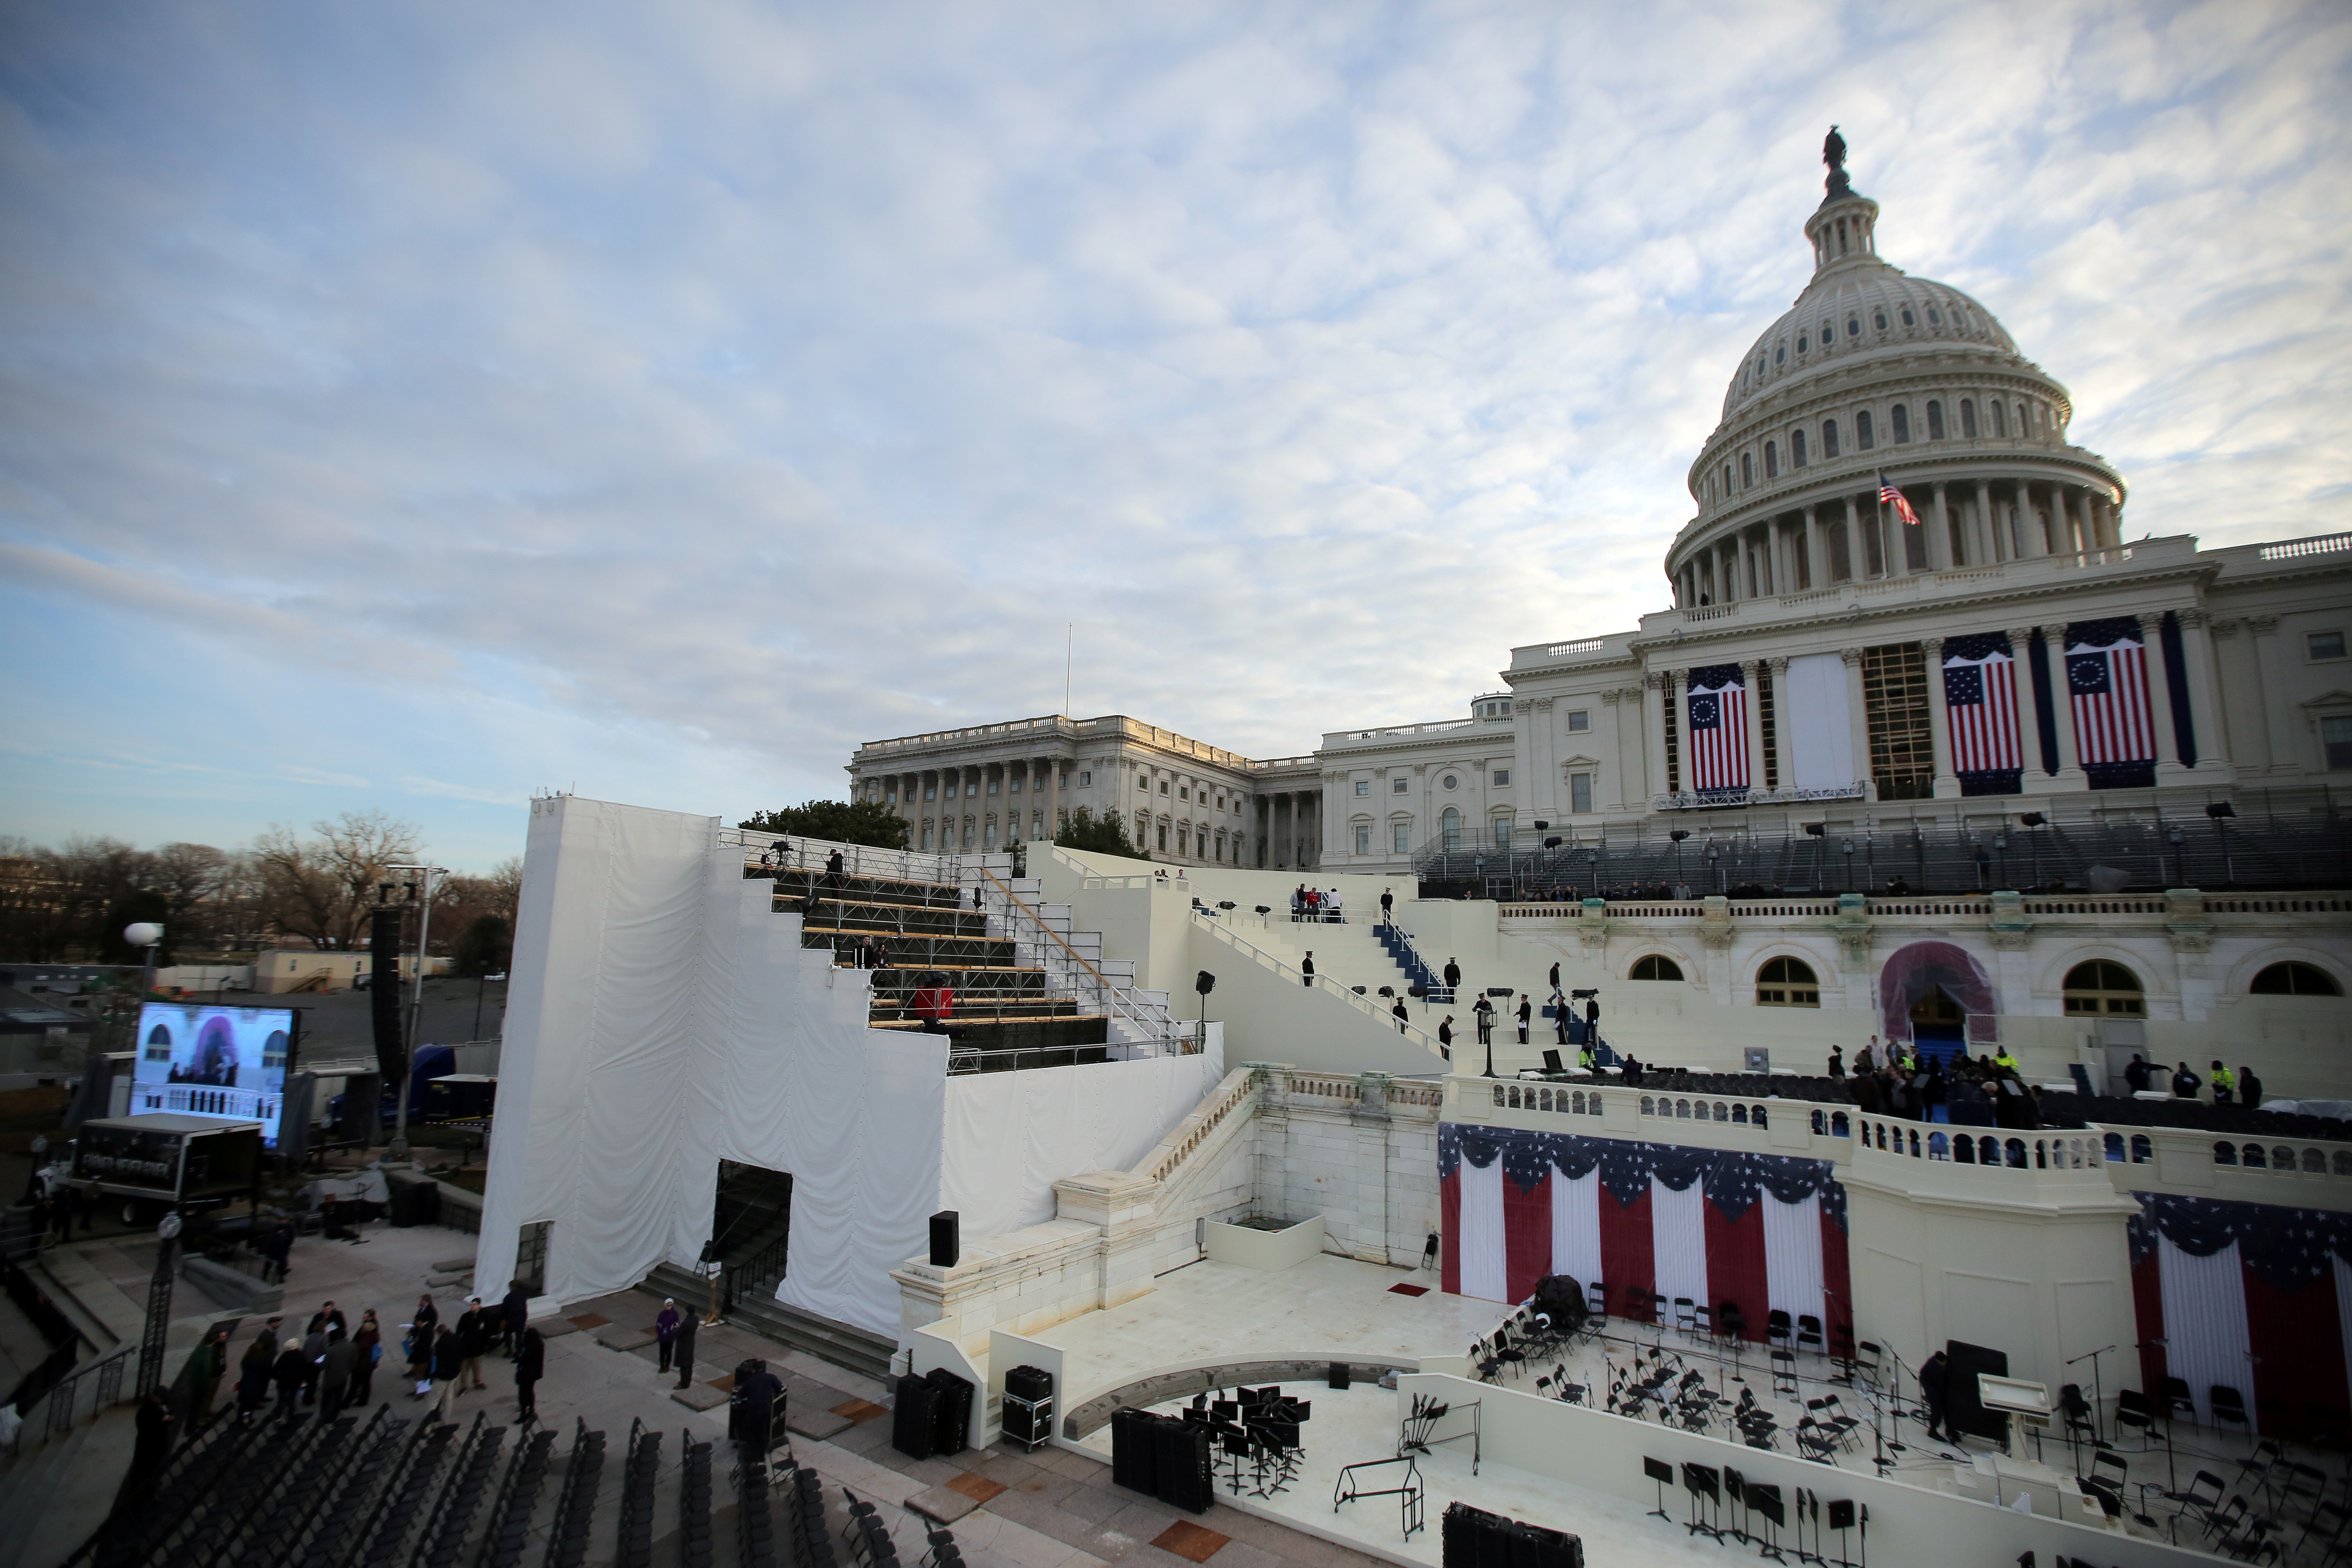 The U.S. Capitol is seen during a rehearsal for the inauguration ceremony of U.S. President-elect Donald Trump in Washington, U.S.,